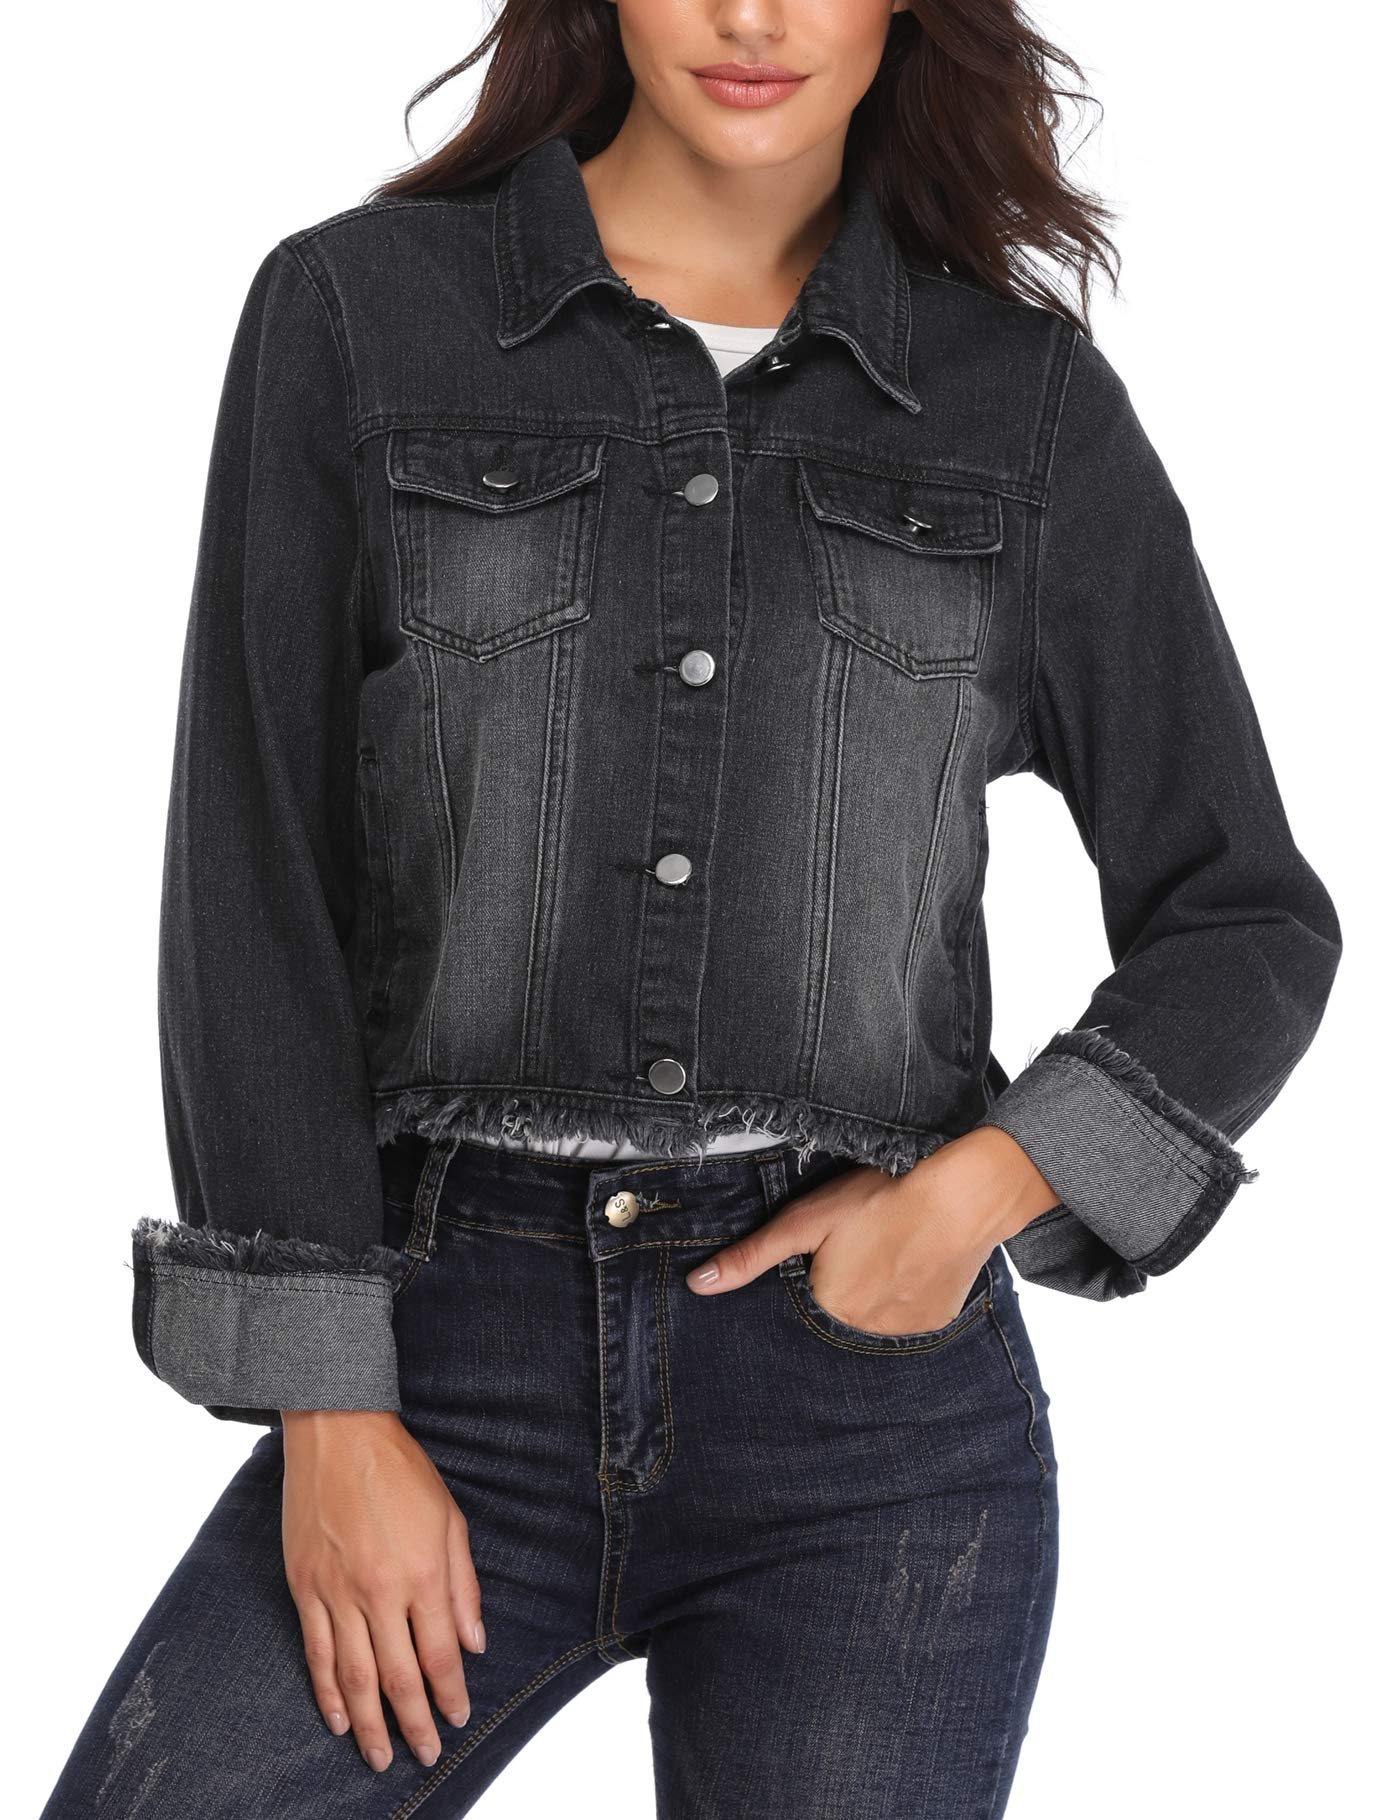 MISS MOLY Jean Jackets for Women Button up Turn Down Collar Frayed Denim Washed Crop Coat (Black, Medium/US-10)